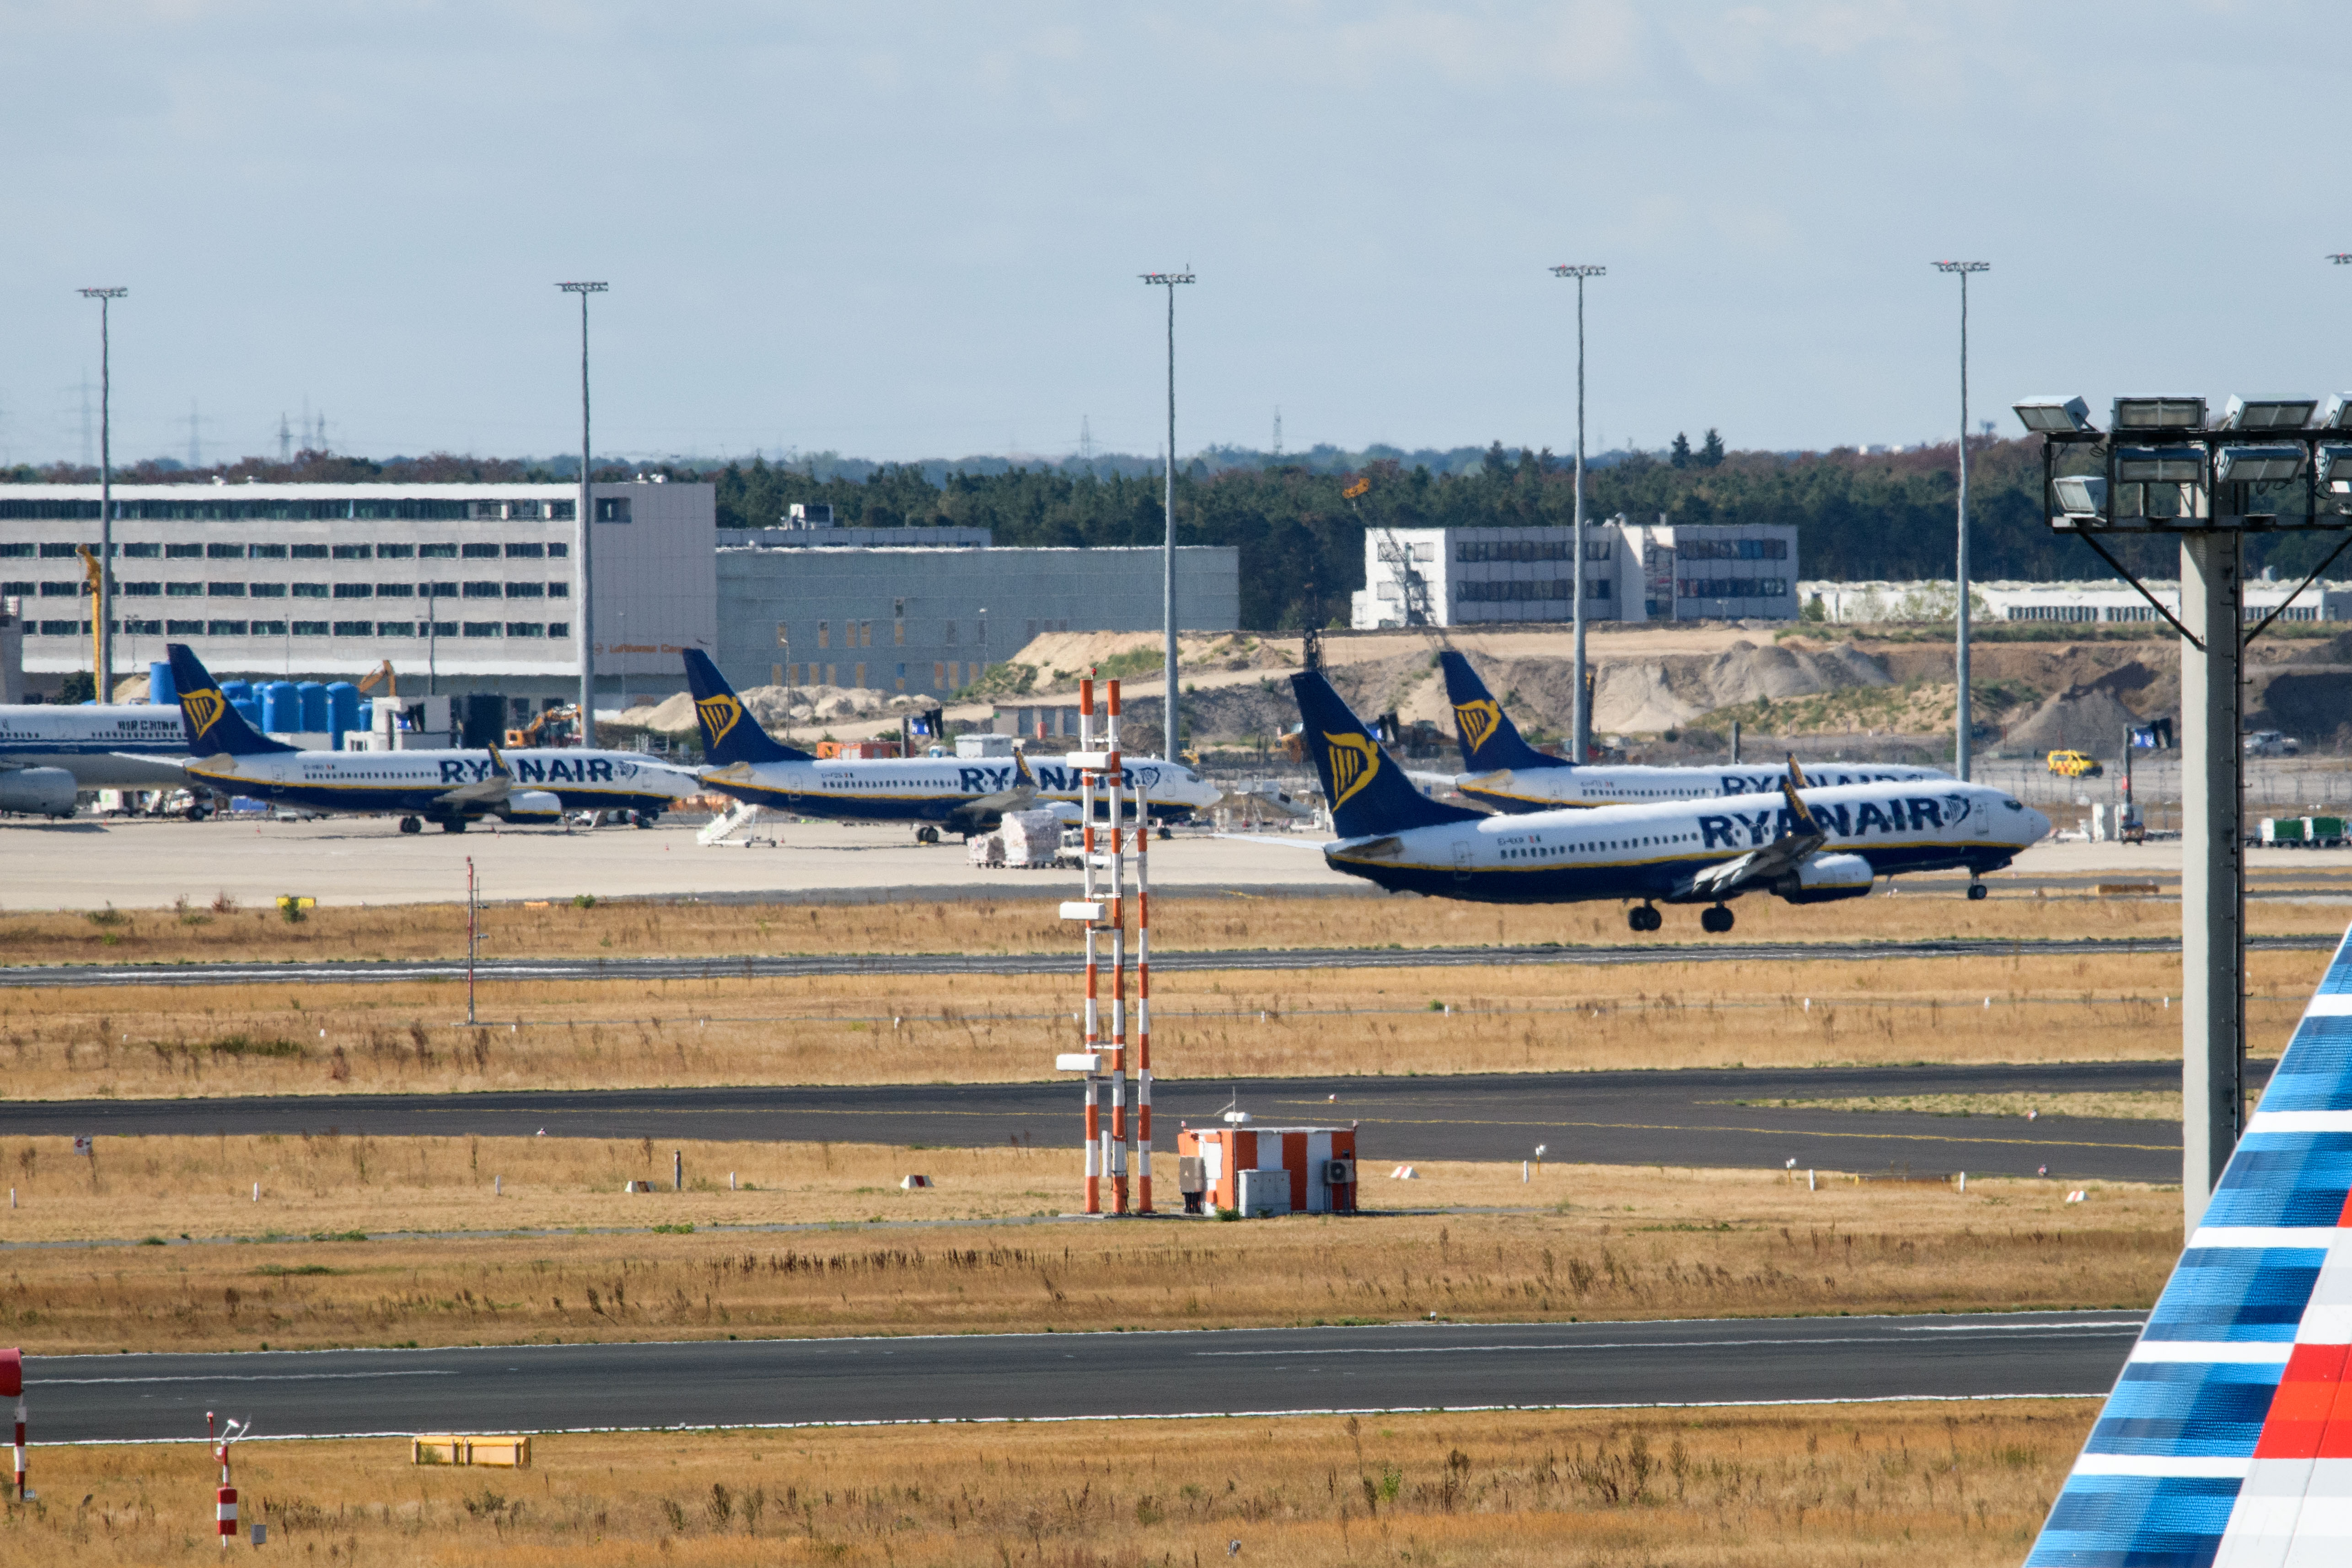 FRANKFURT AM MAIN, GERMANY - AUGUST 10: An airplane of discount airliner RyanAir lands during a 24-hour strike by the pilots while other stand at the Frankfurt Airport on August 10, 2018 in Frankfurt, Germany. RyanAir pilots in Germany, Ireland, Sweden, Belgium and Holland are taking part in the strike over demands for better pay and working conditions. (Photo by Thomas Lohnes/Getty Images)